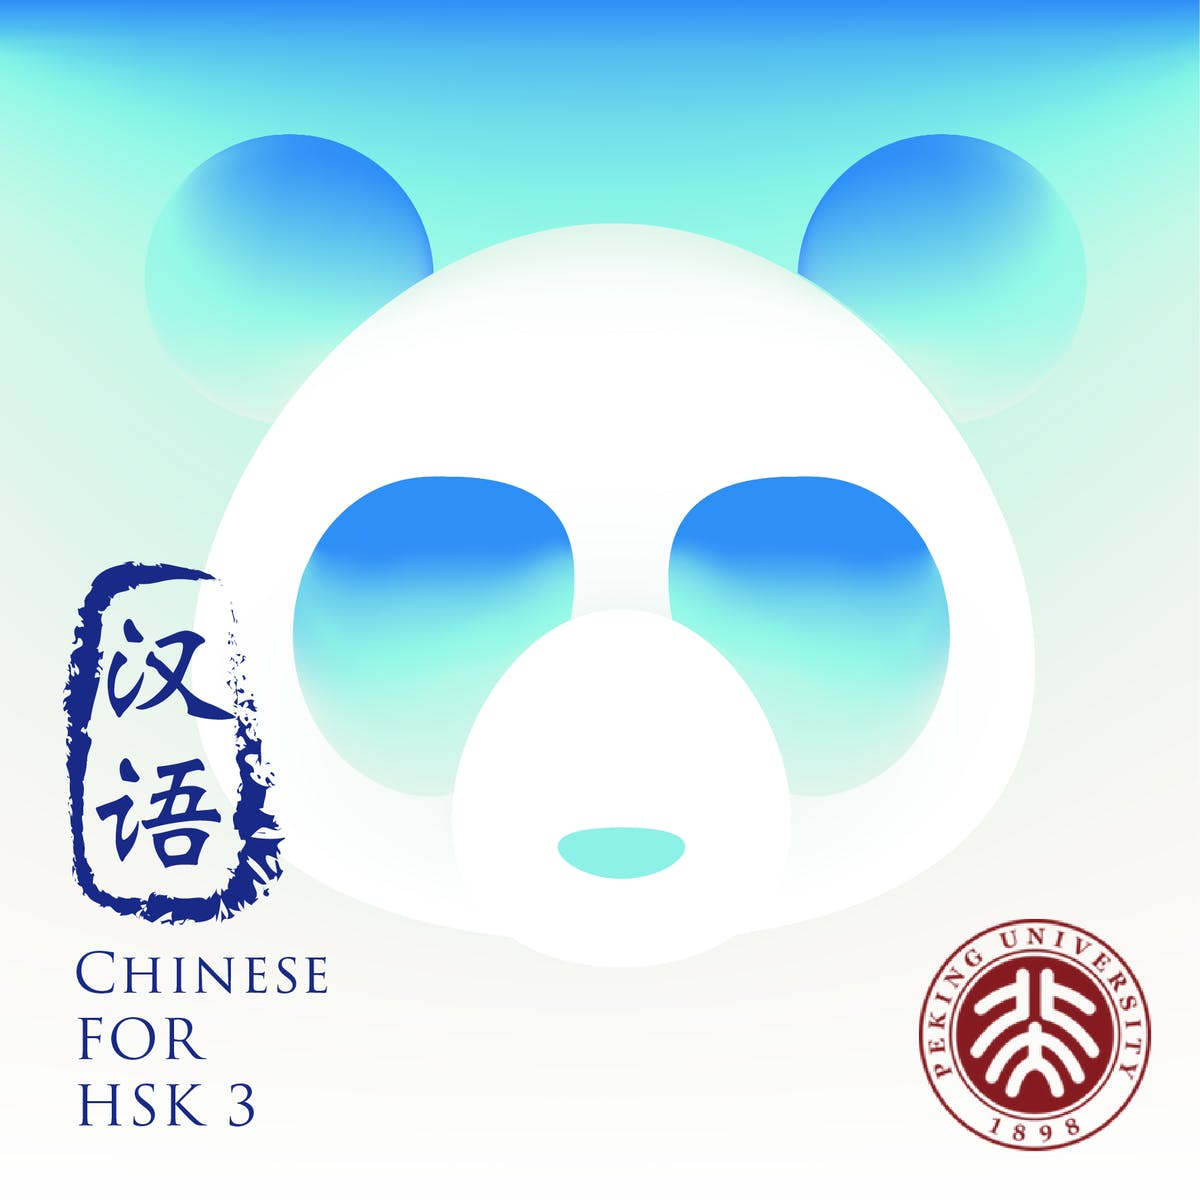 Chinese For Hsk 3 Part I Coursera